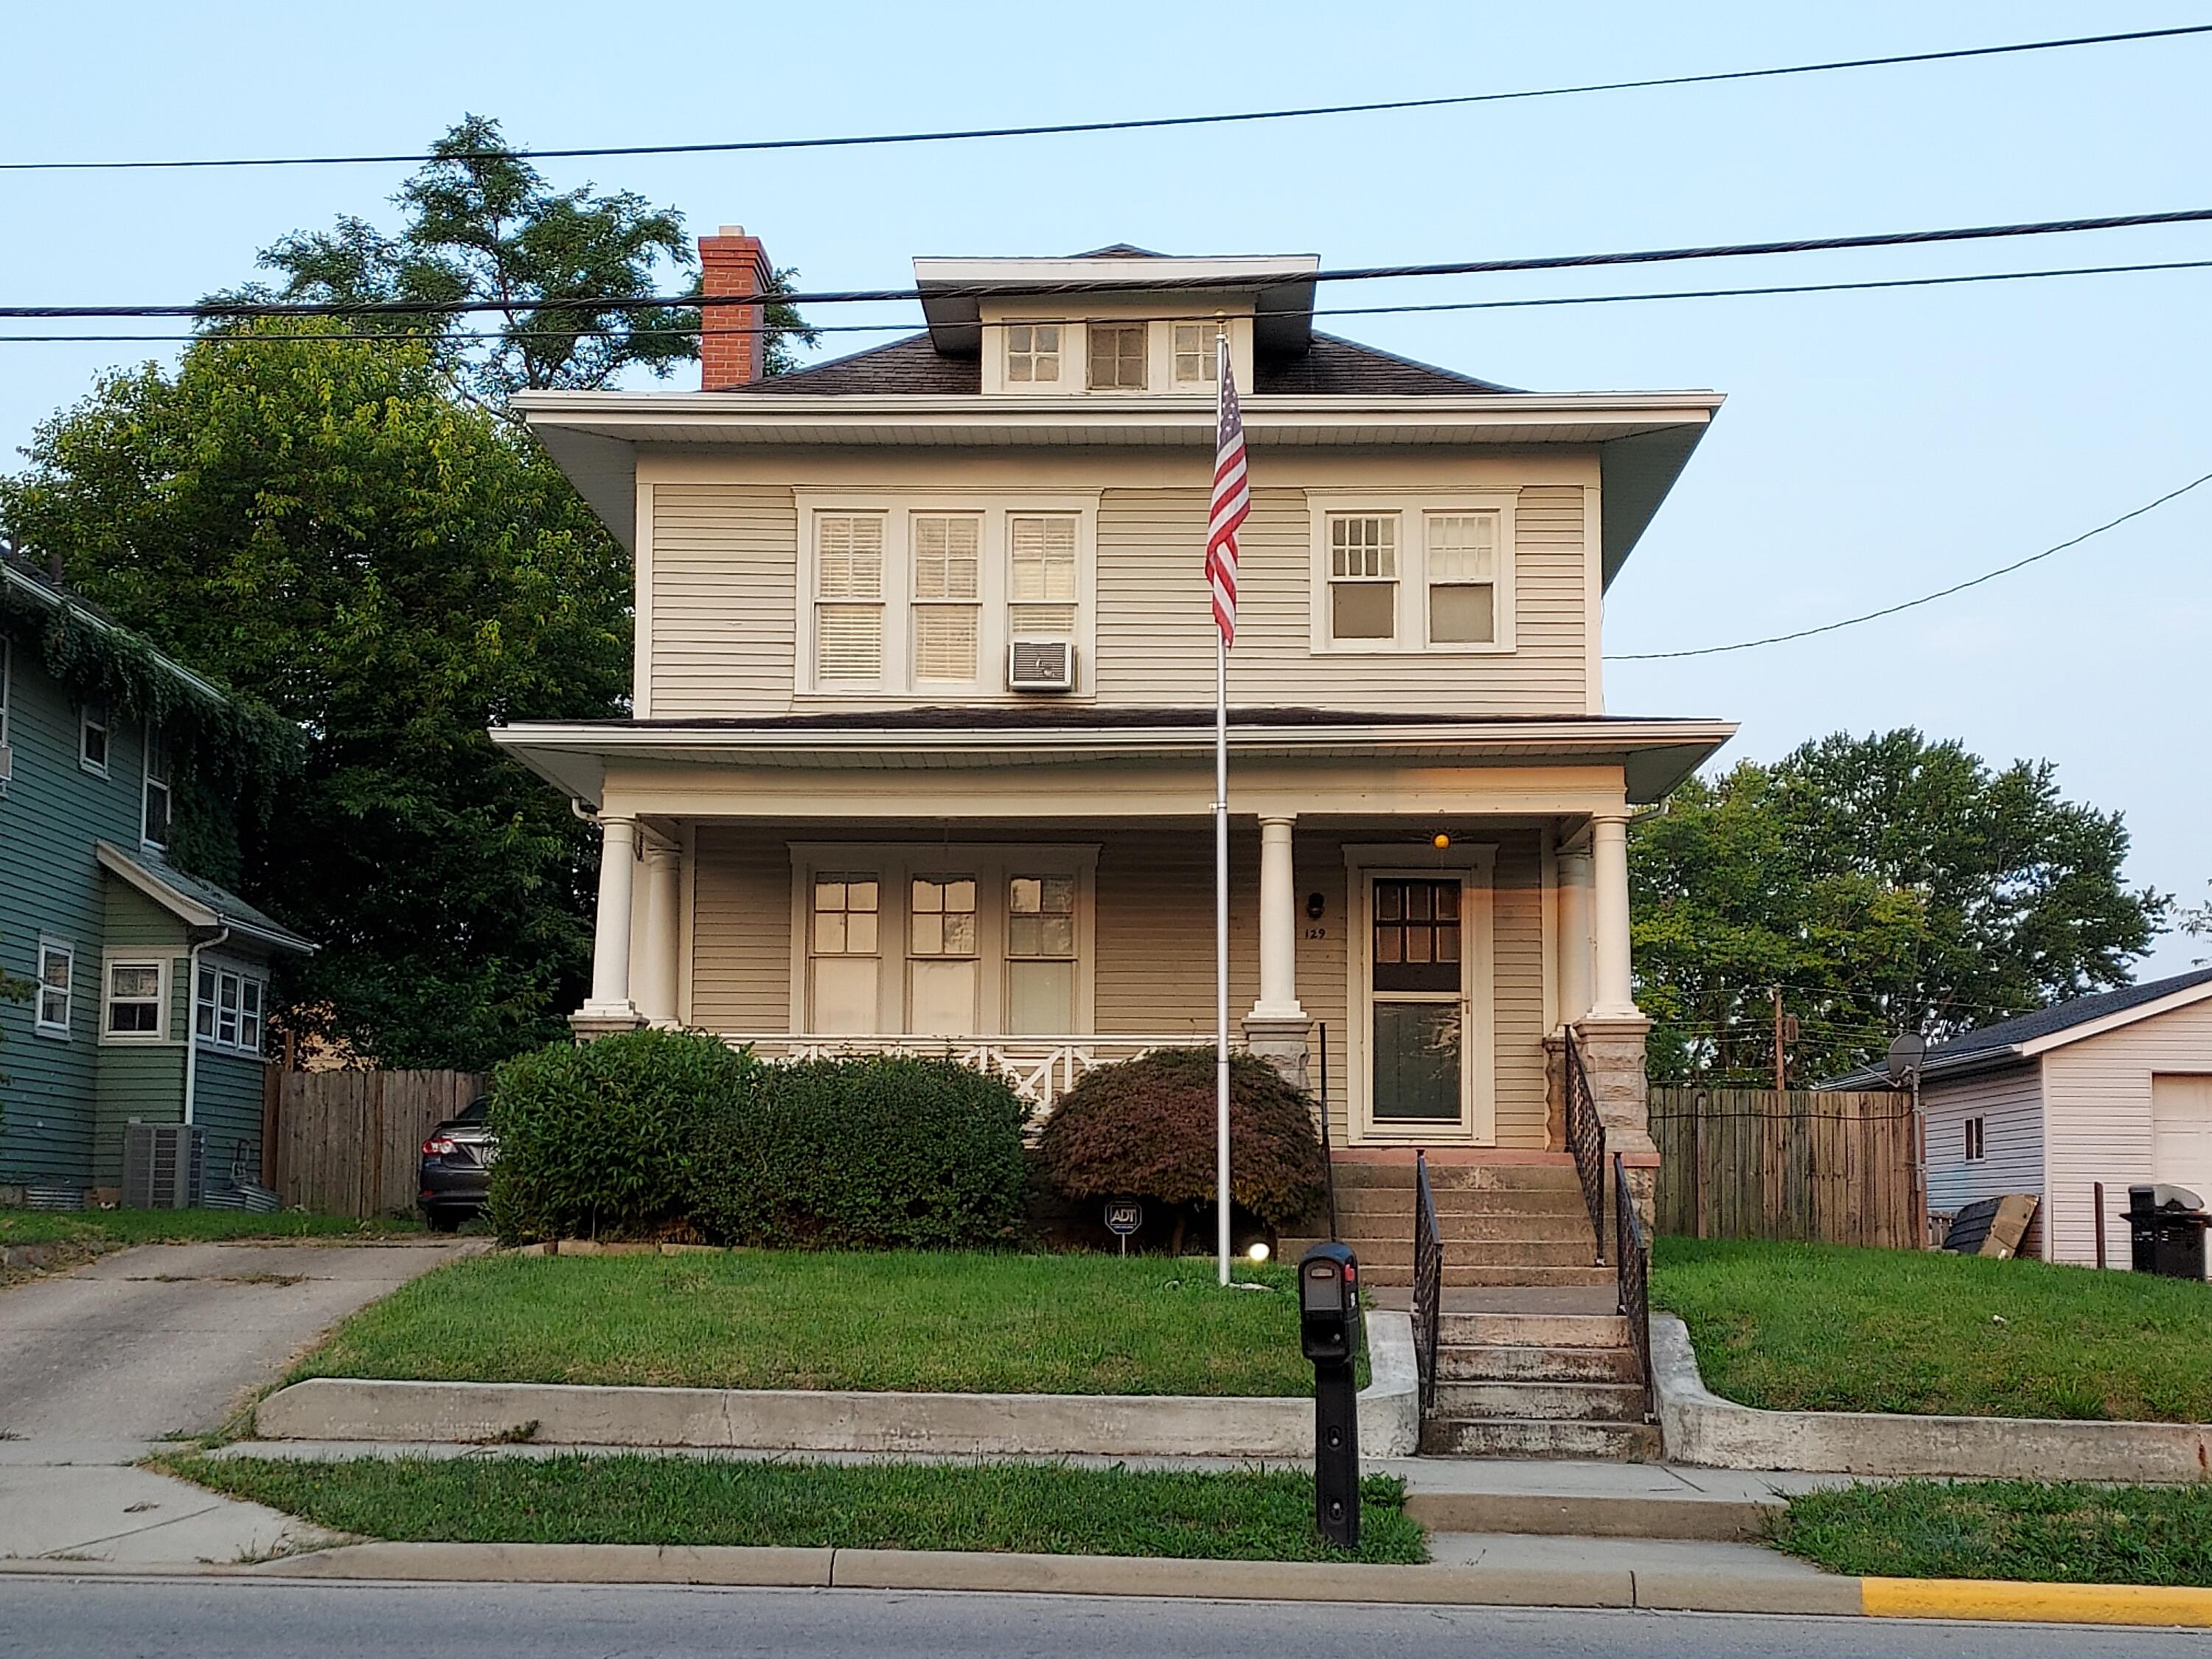 129 N Chillicothe St